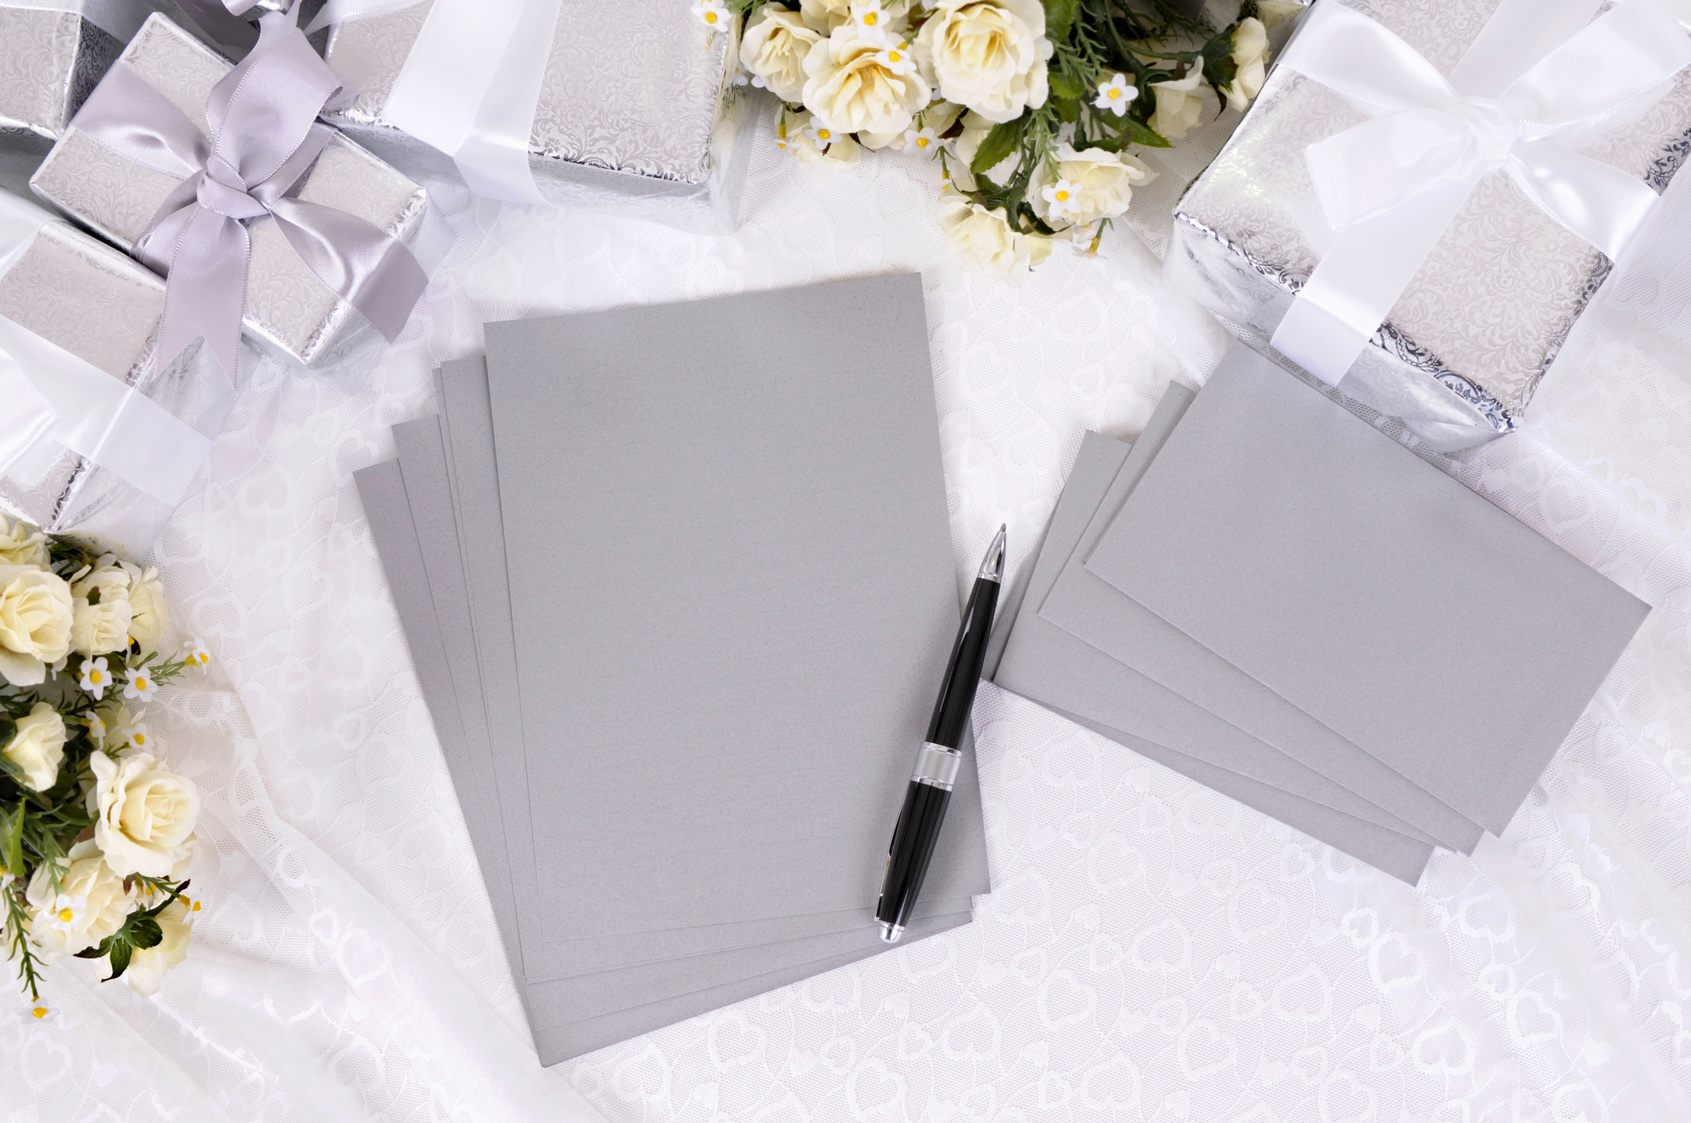 Alternative Silver Wedding Gifts : ... with several wedding gifts and white rose bouquets. Space for copy